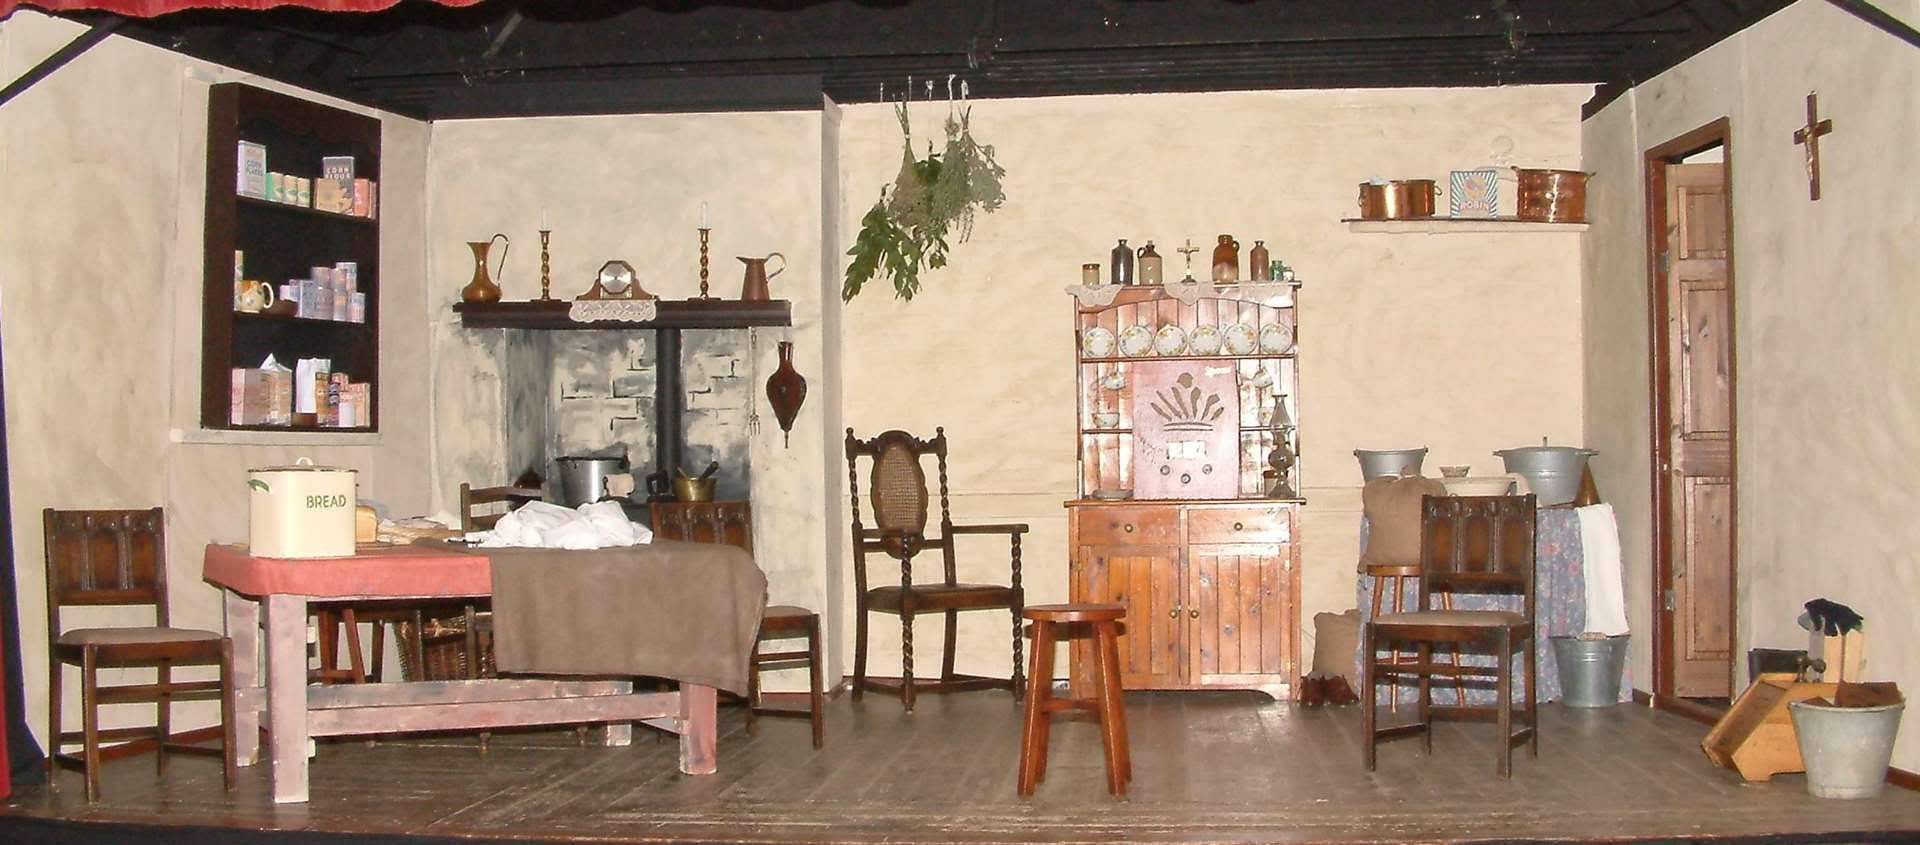 The stage as set for Dancing at Lughnasa